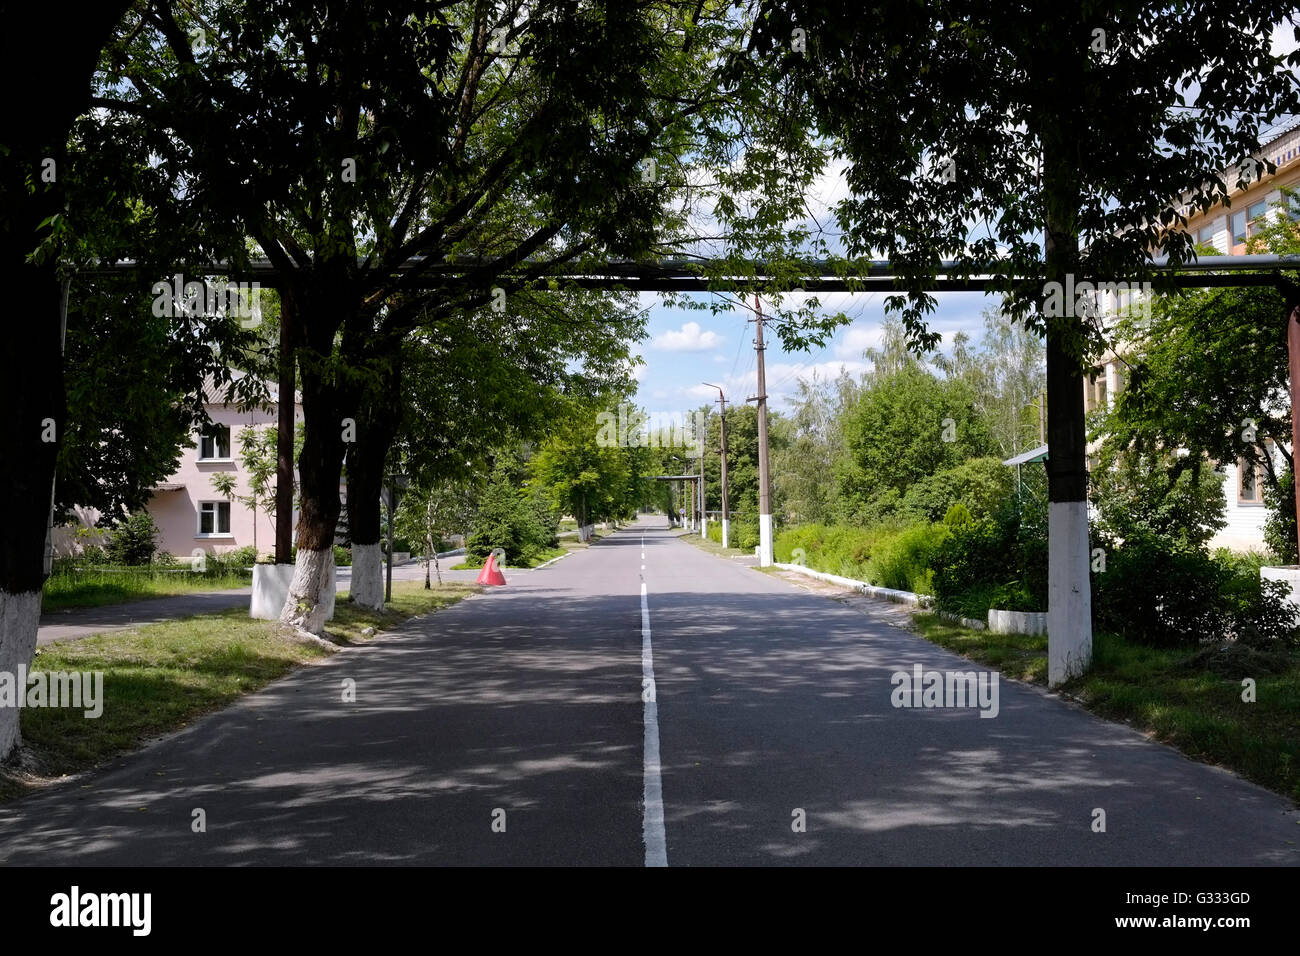 Empty road in the town of Chetnobyl located inside the Chernobyl Exclusion Zone in Ukraine on 04 June 2016. The - Stock Image